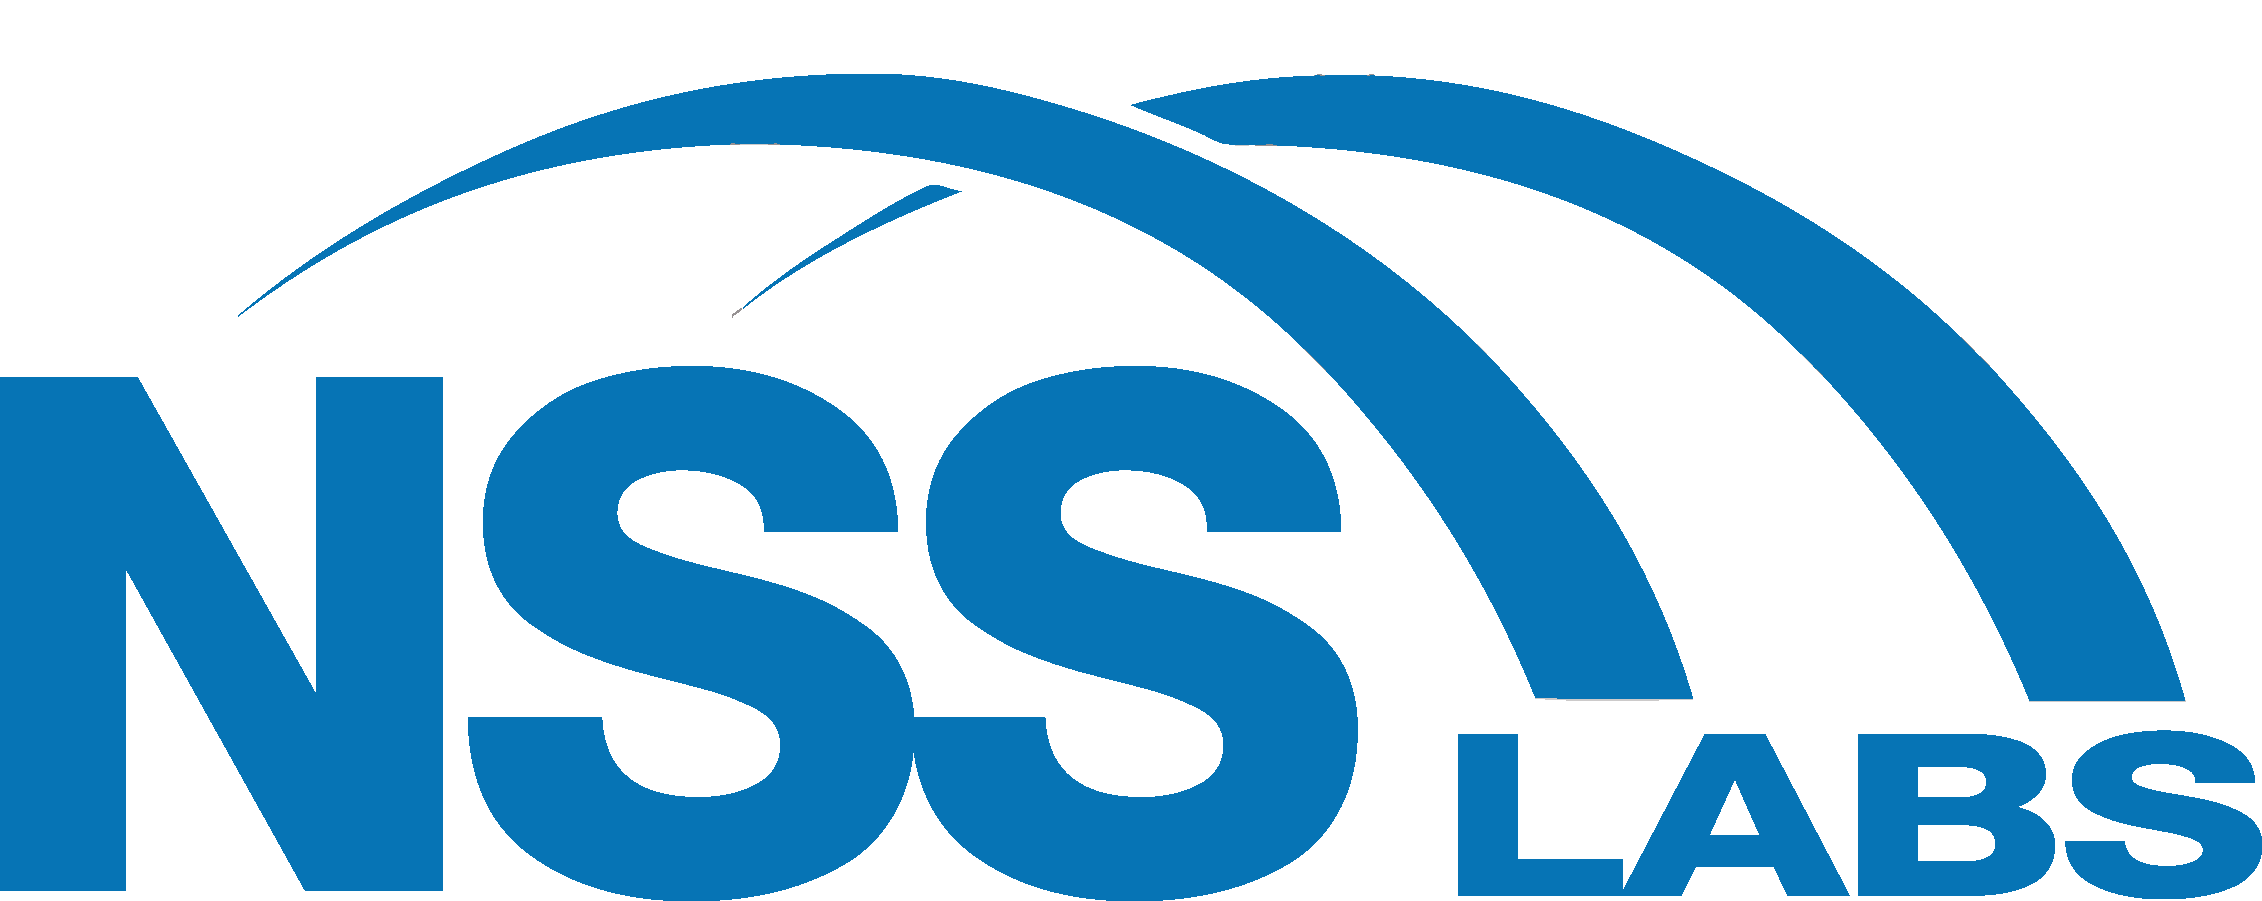 NSS Labs logo